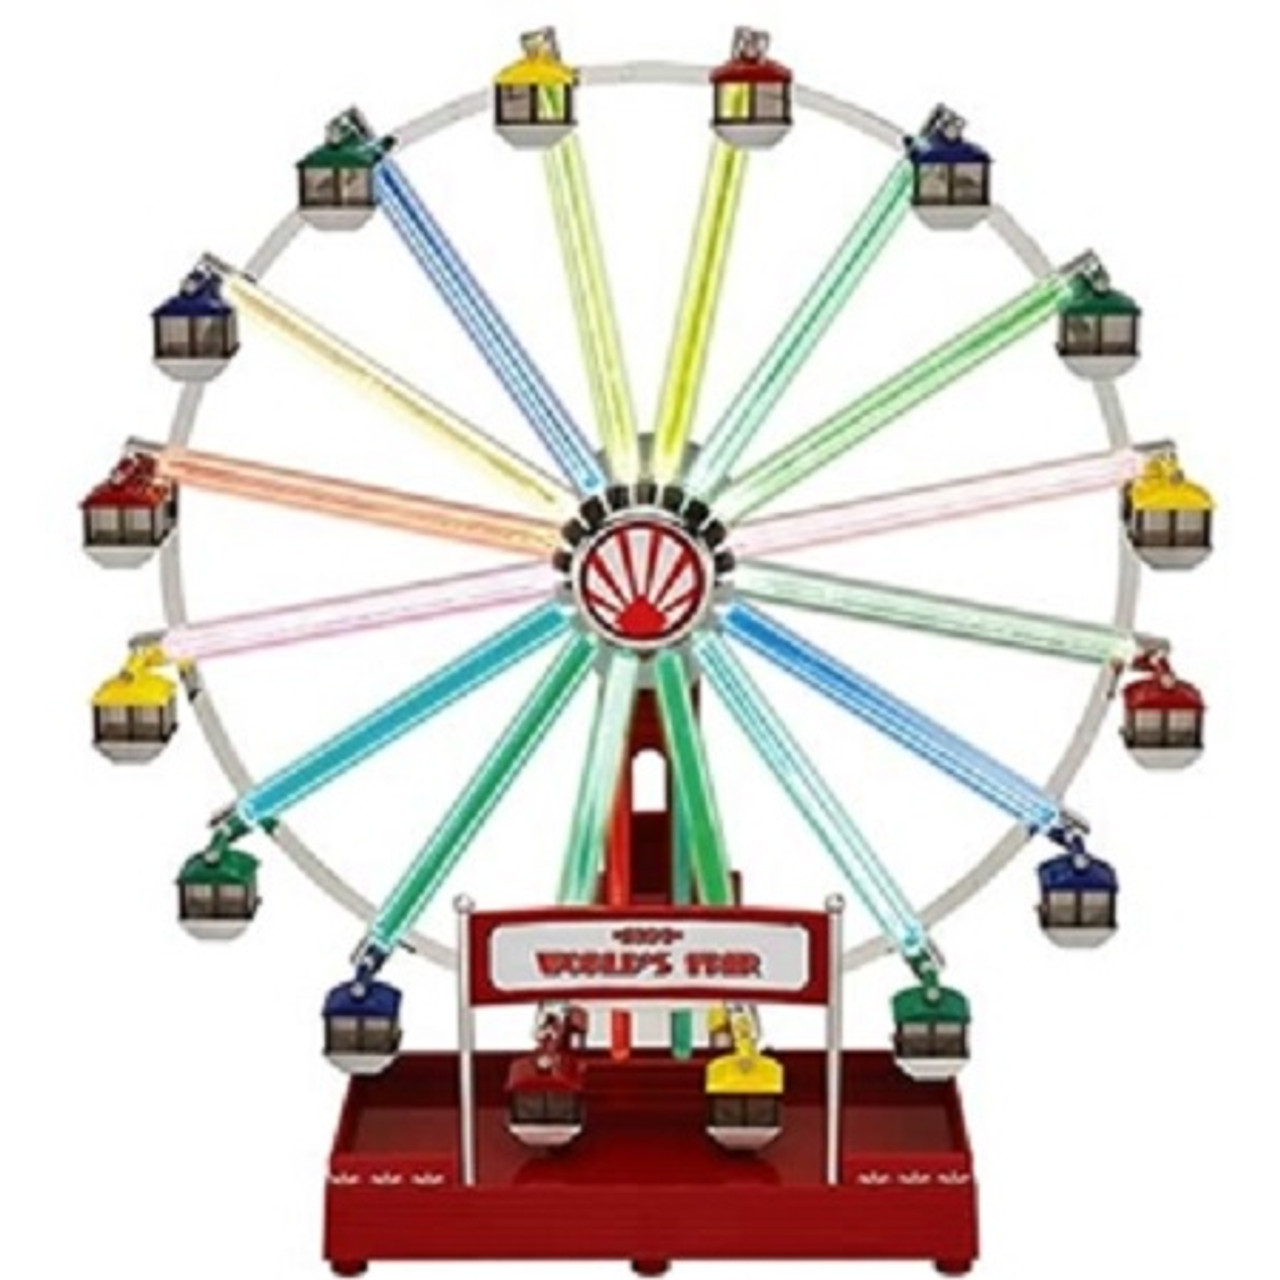 mr christmas animated musical led 1939 worlds fair ferris wheel decoration 79799 31754352 - Animated Christmas Decorations Indoor